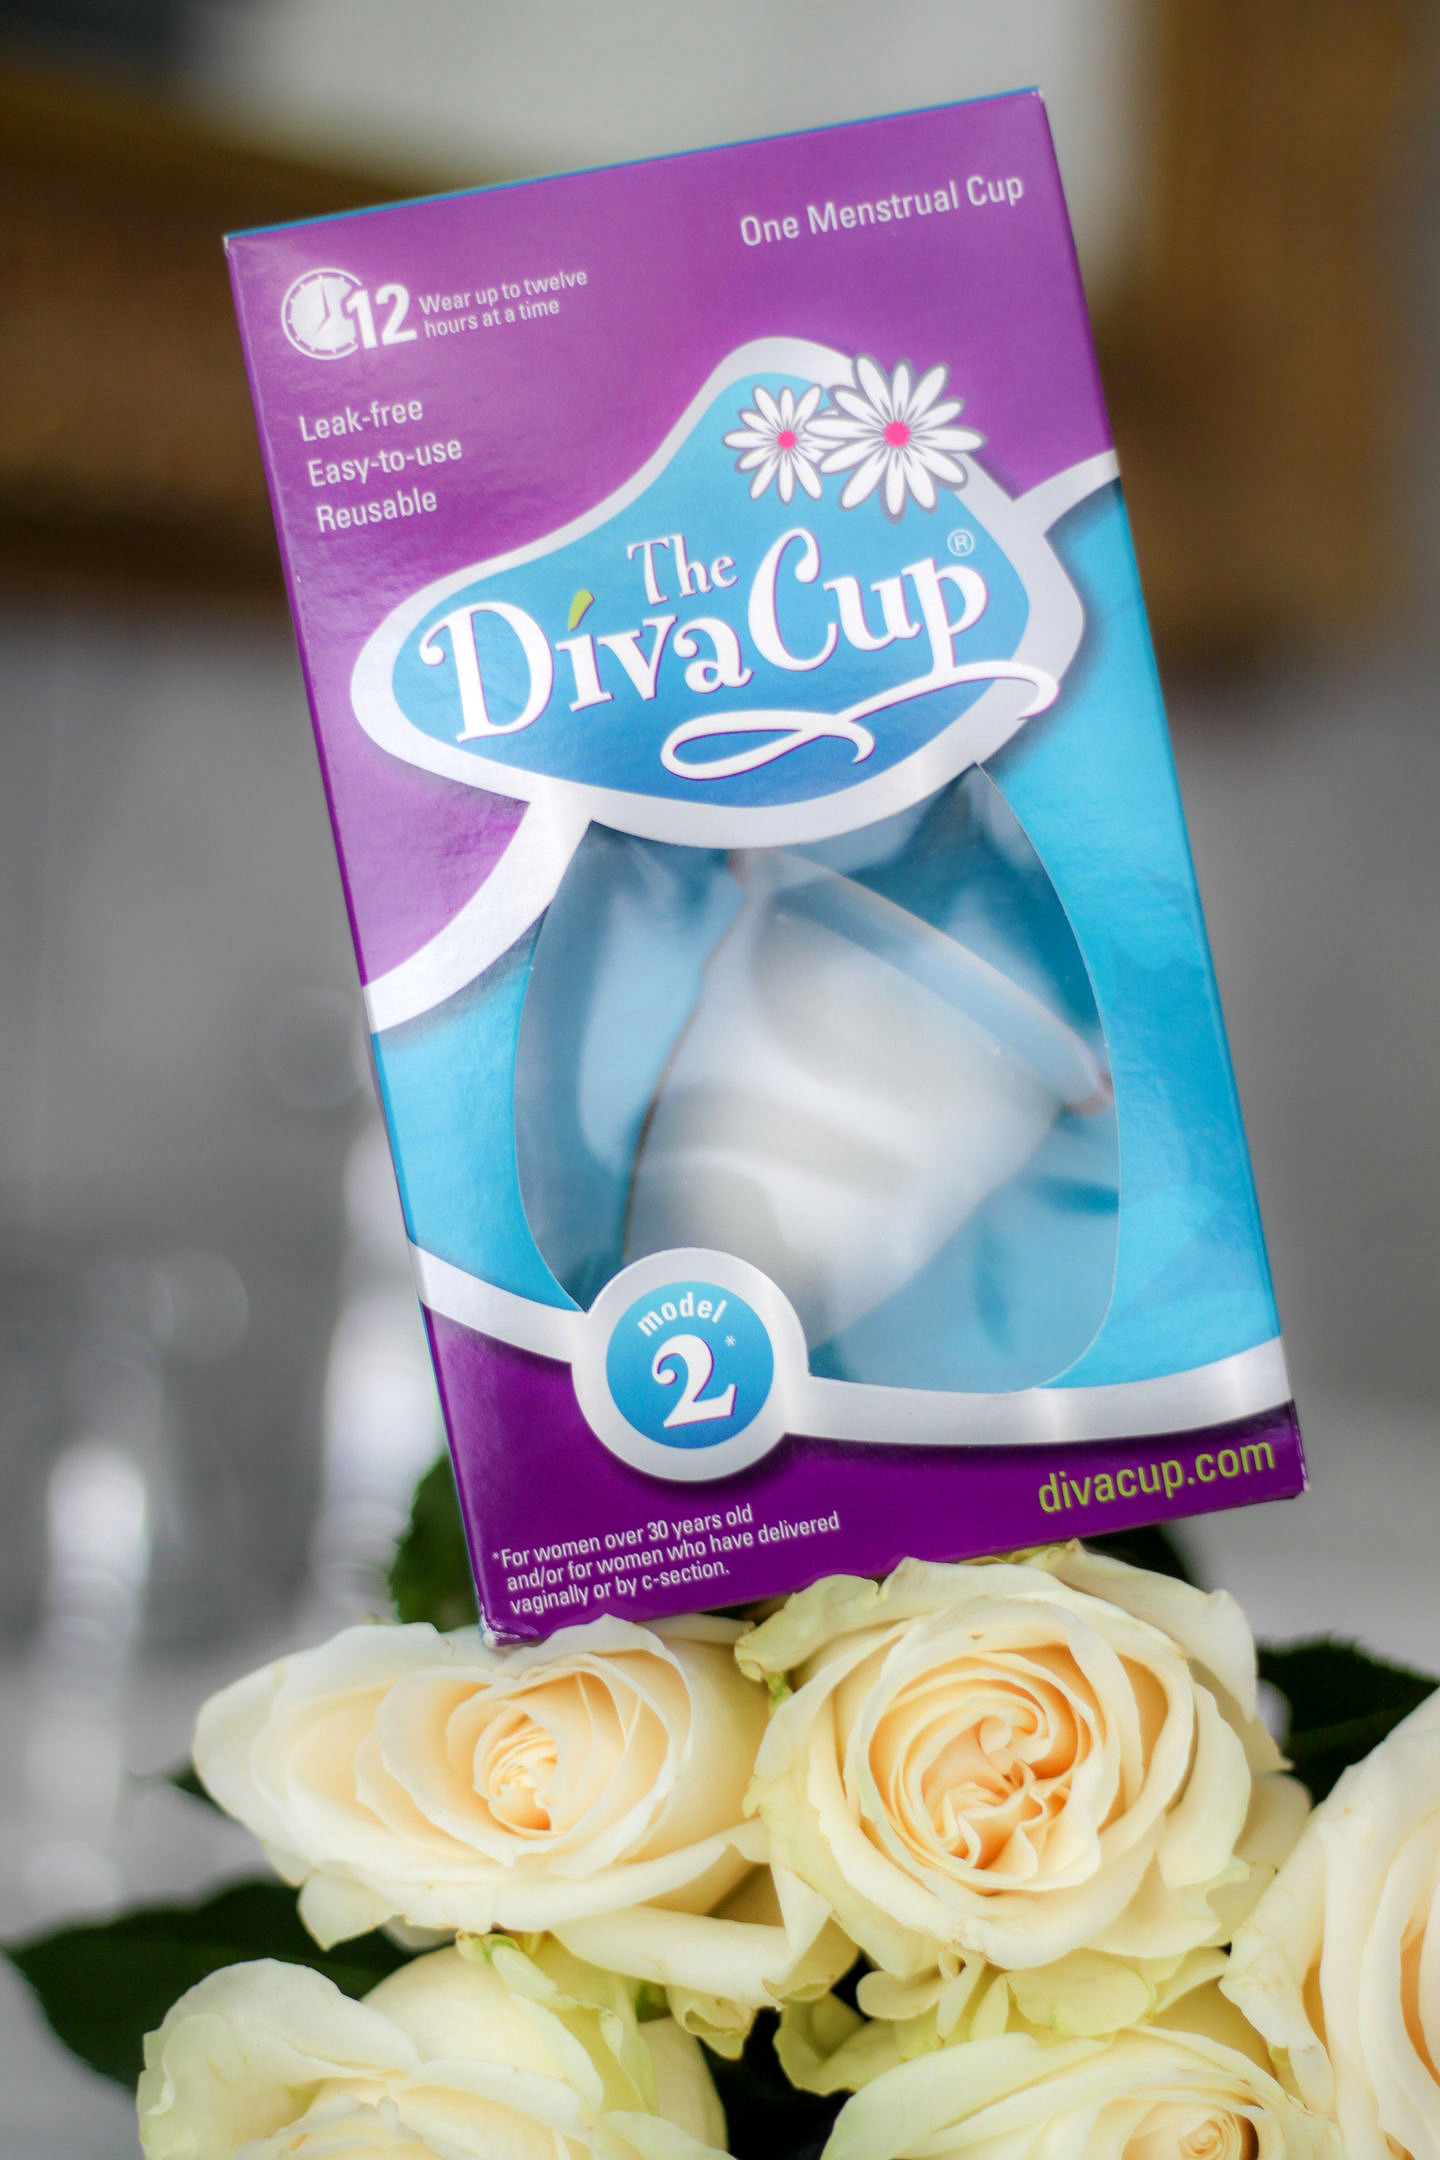 DivaCup: The Benefits of using a Menstrual Cup